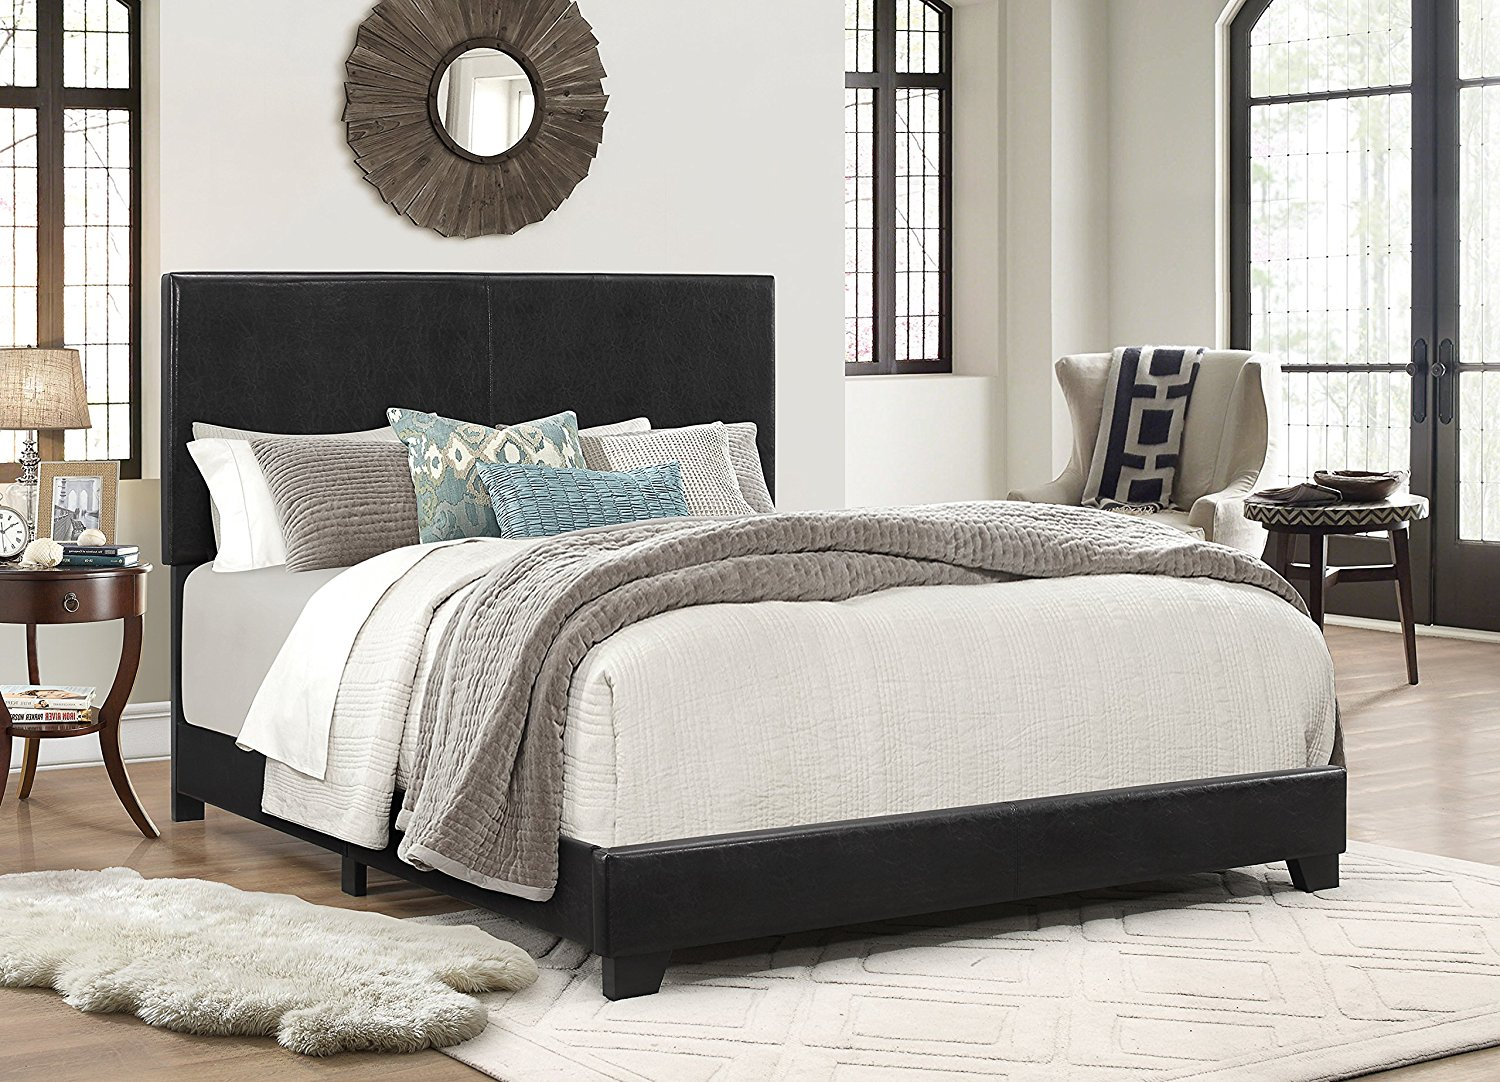 Picture of: Platform Bed Frame With Headboard Queen Size Upholstered Beds Wood Frames Black 784082143120 Ebay